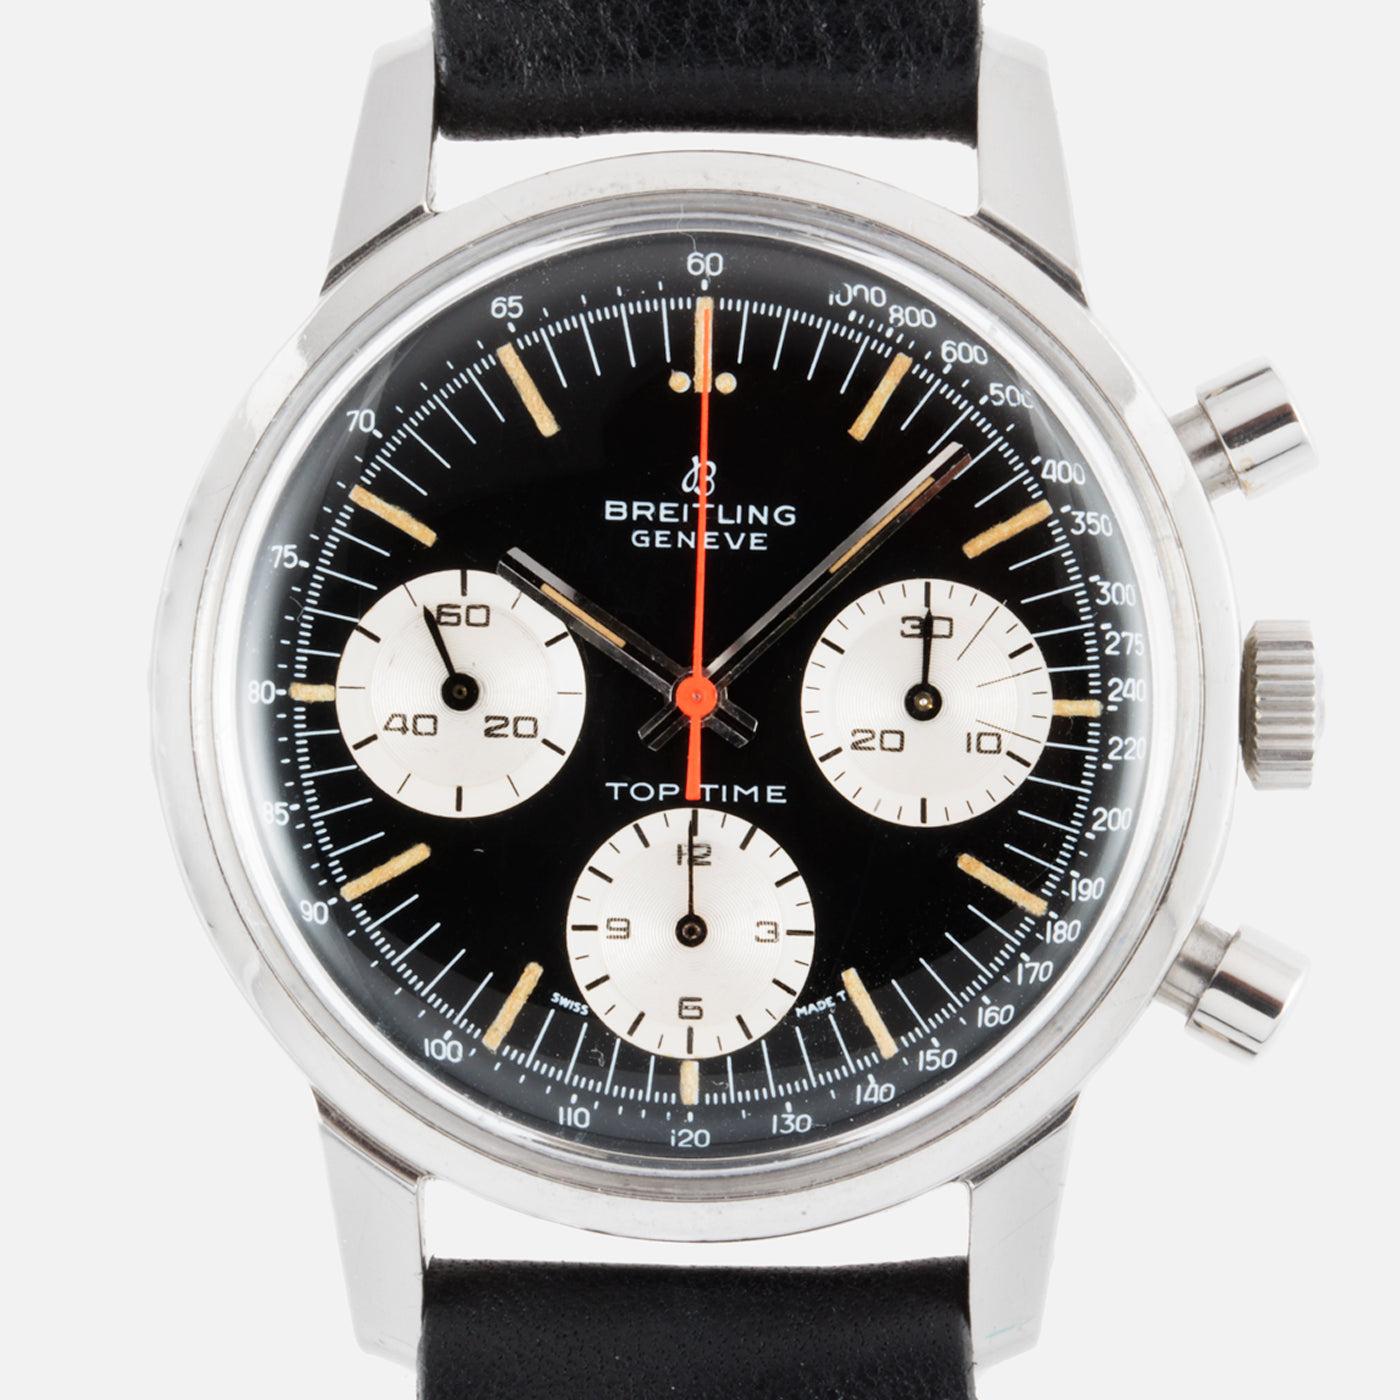 Breitling Top Time Ref. 810